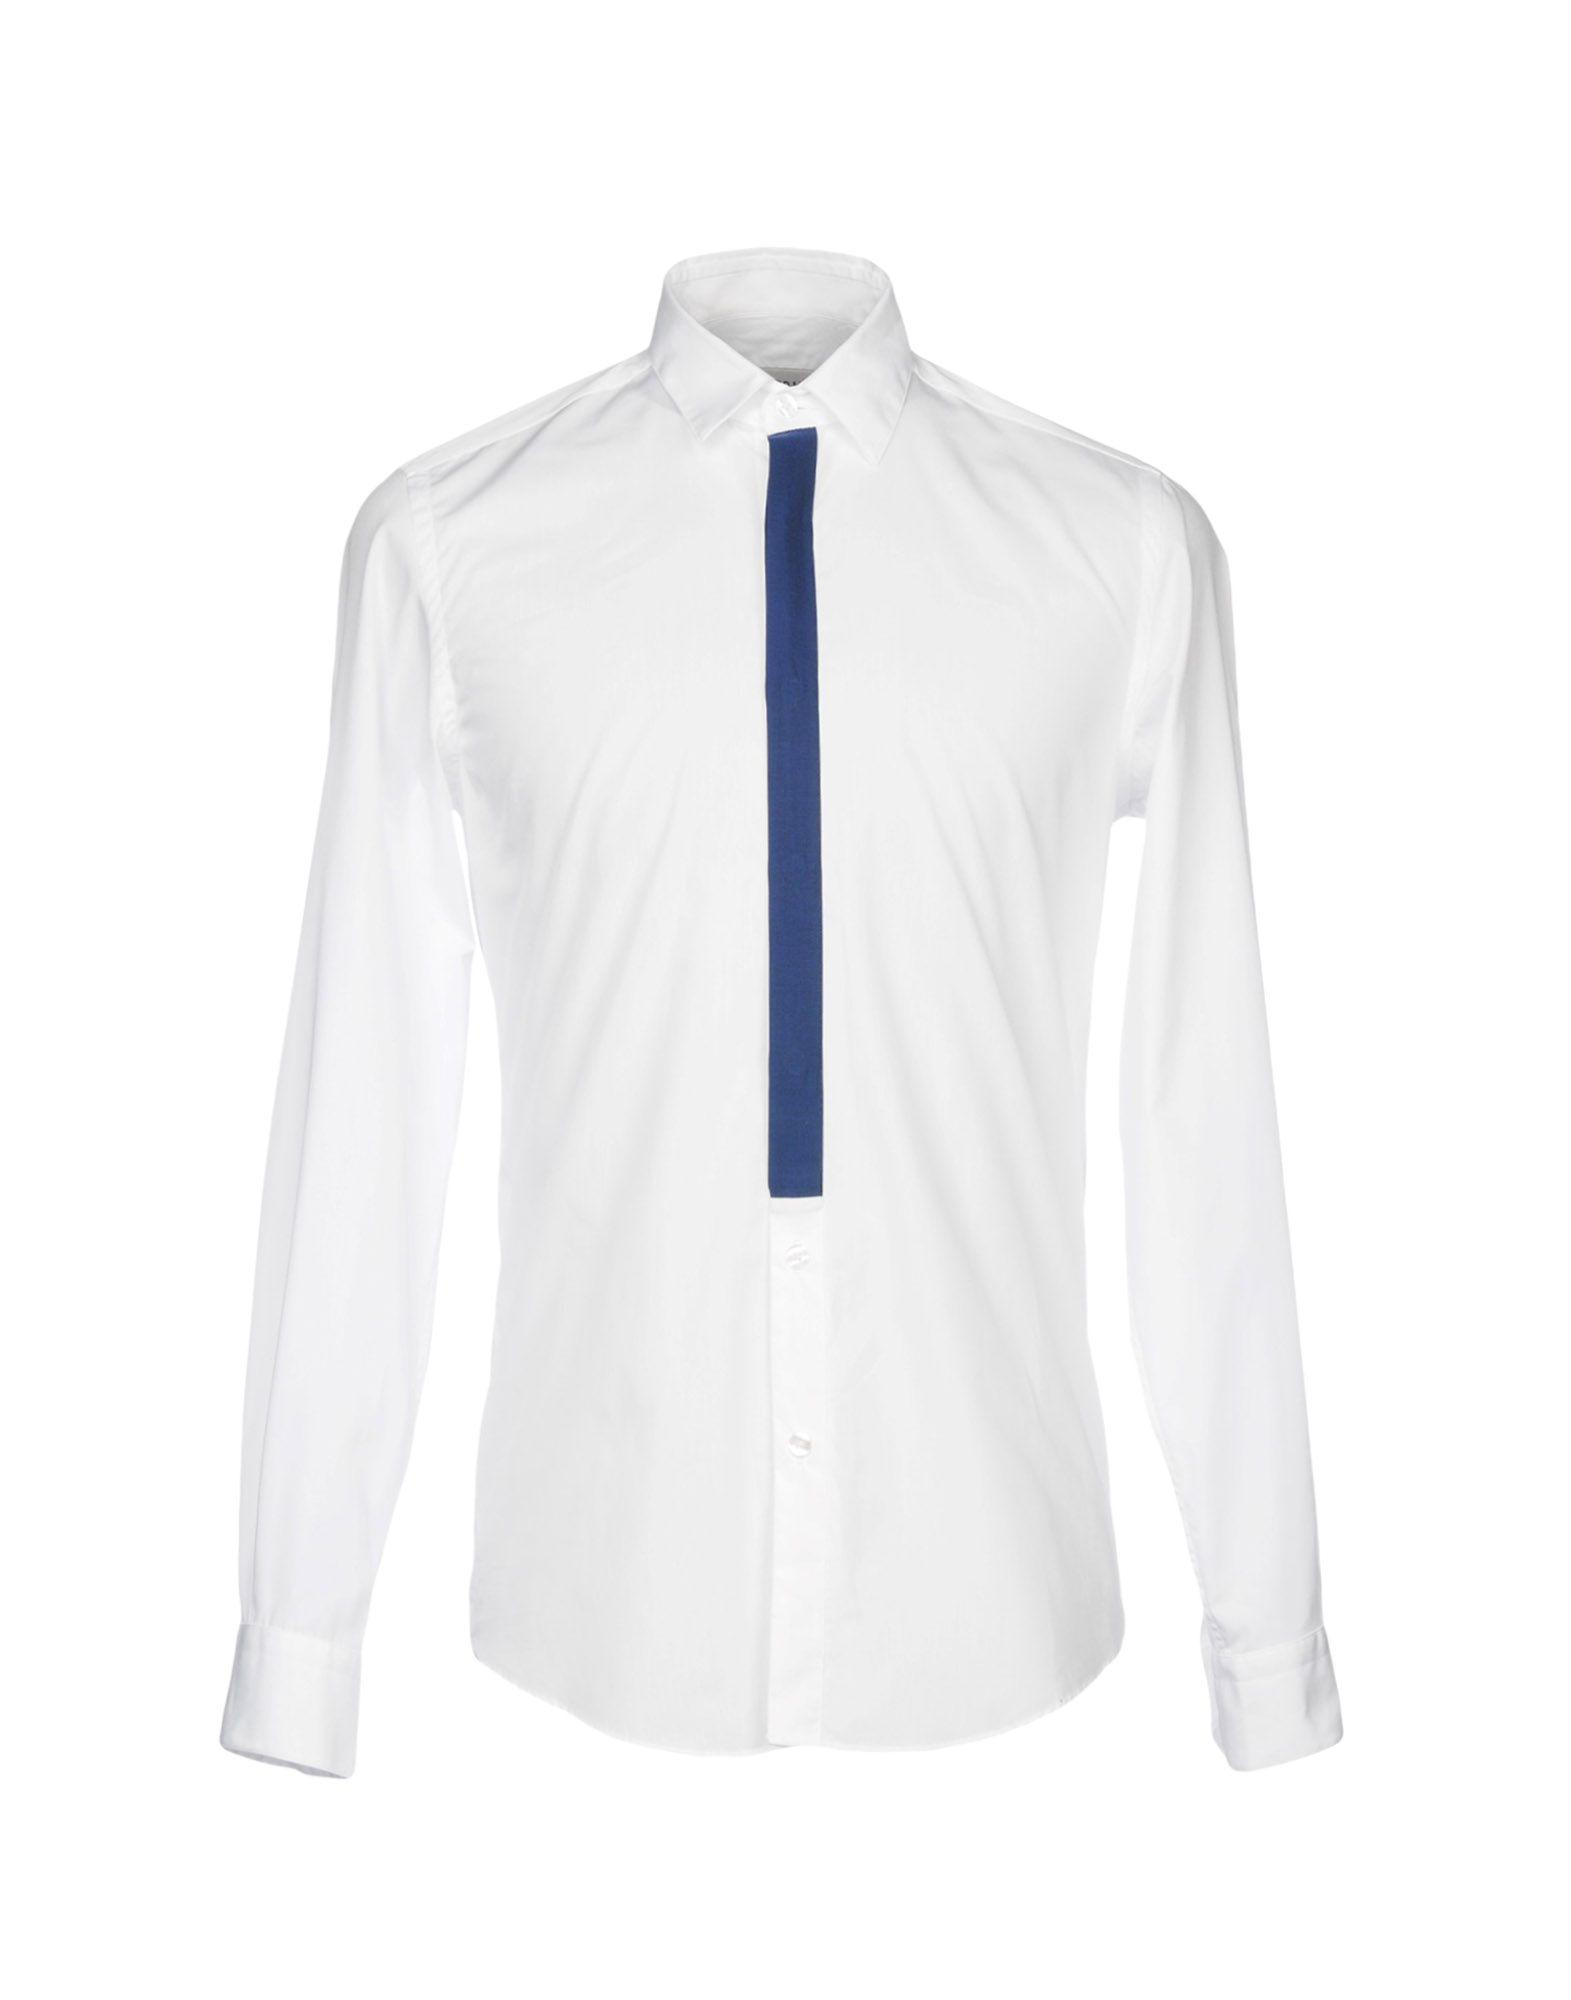 Low Brand Solid Color Shirt In White